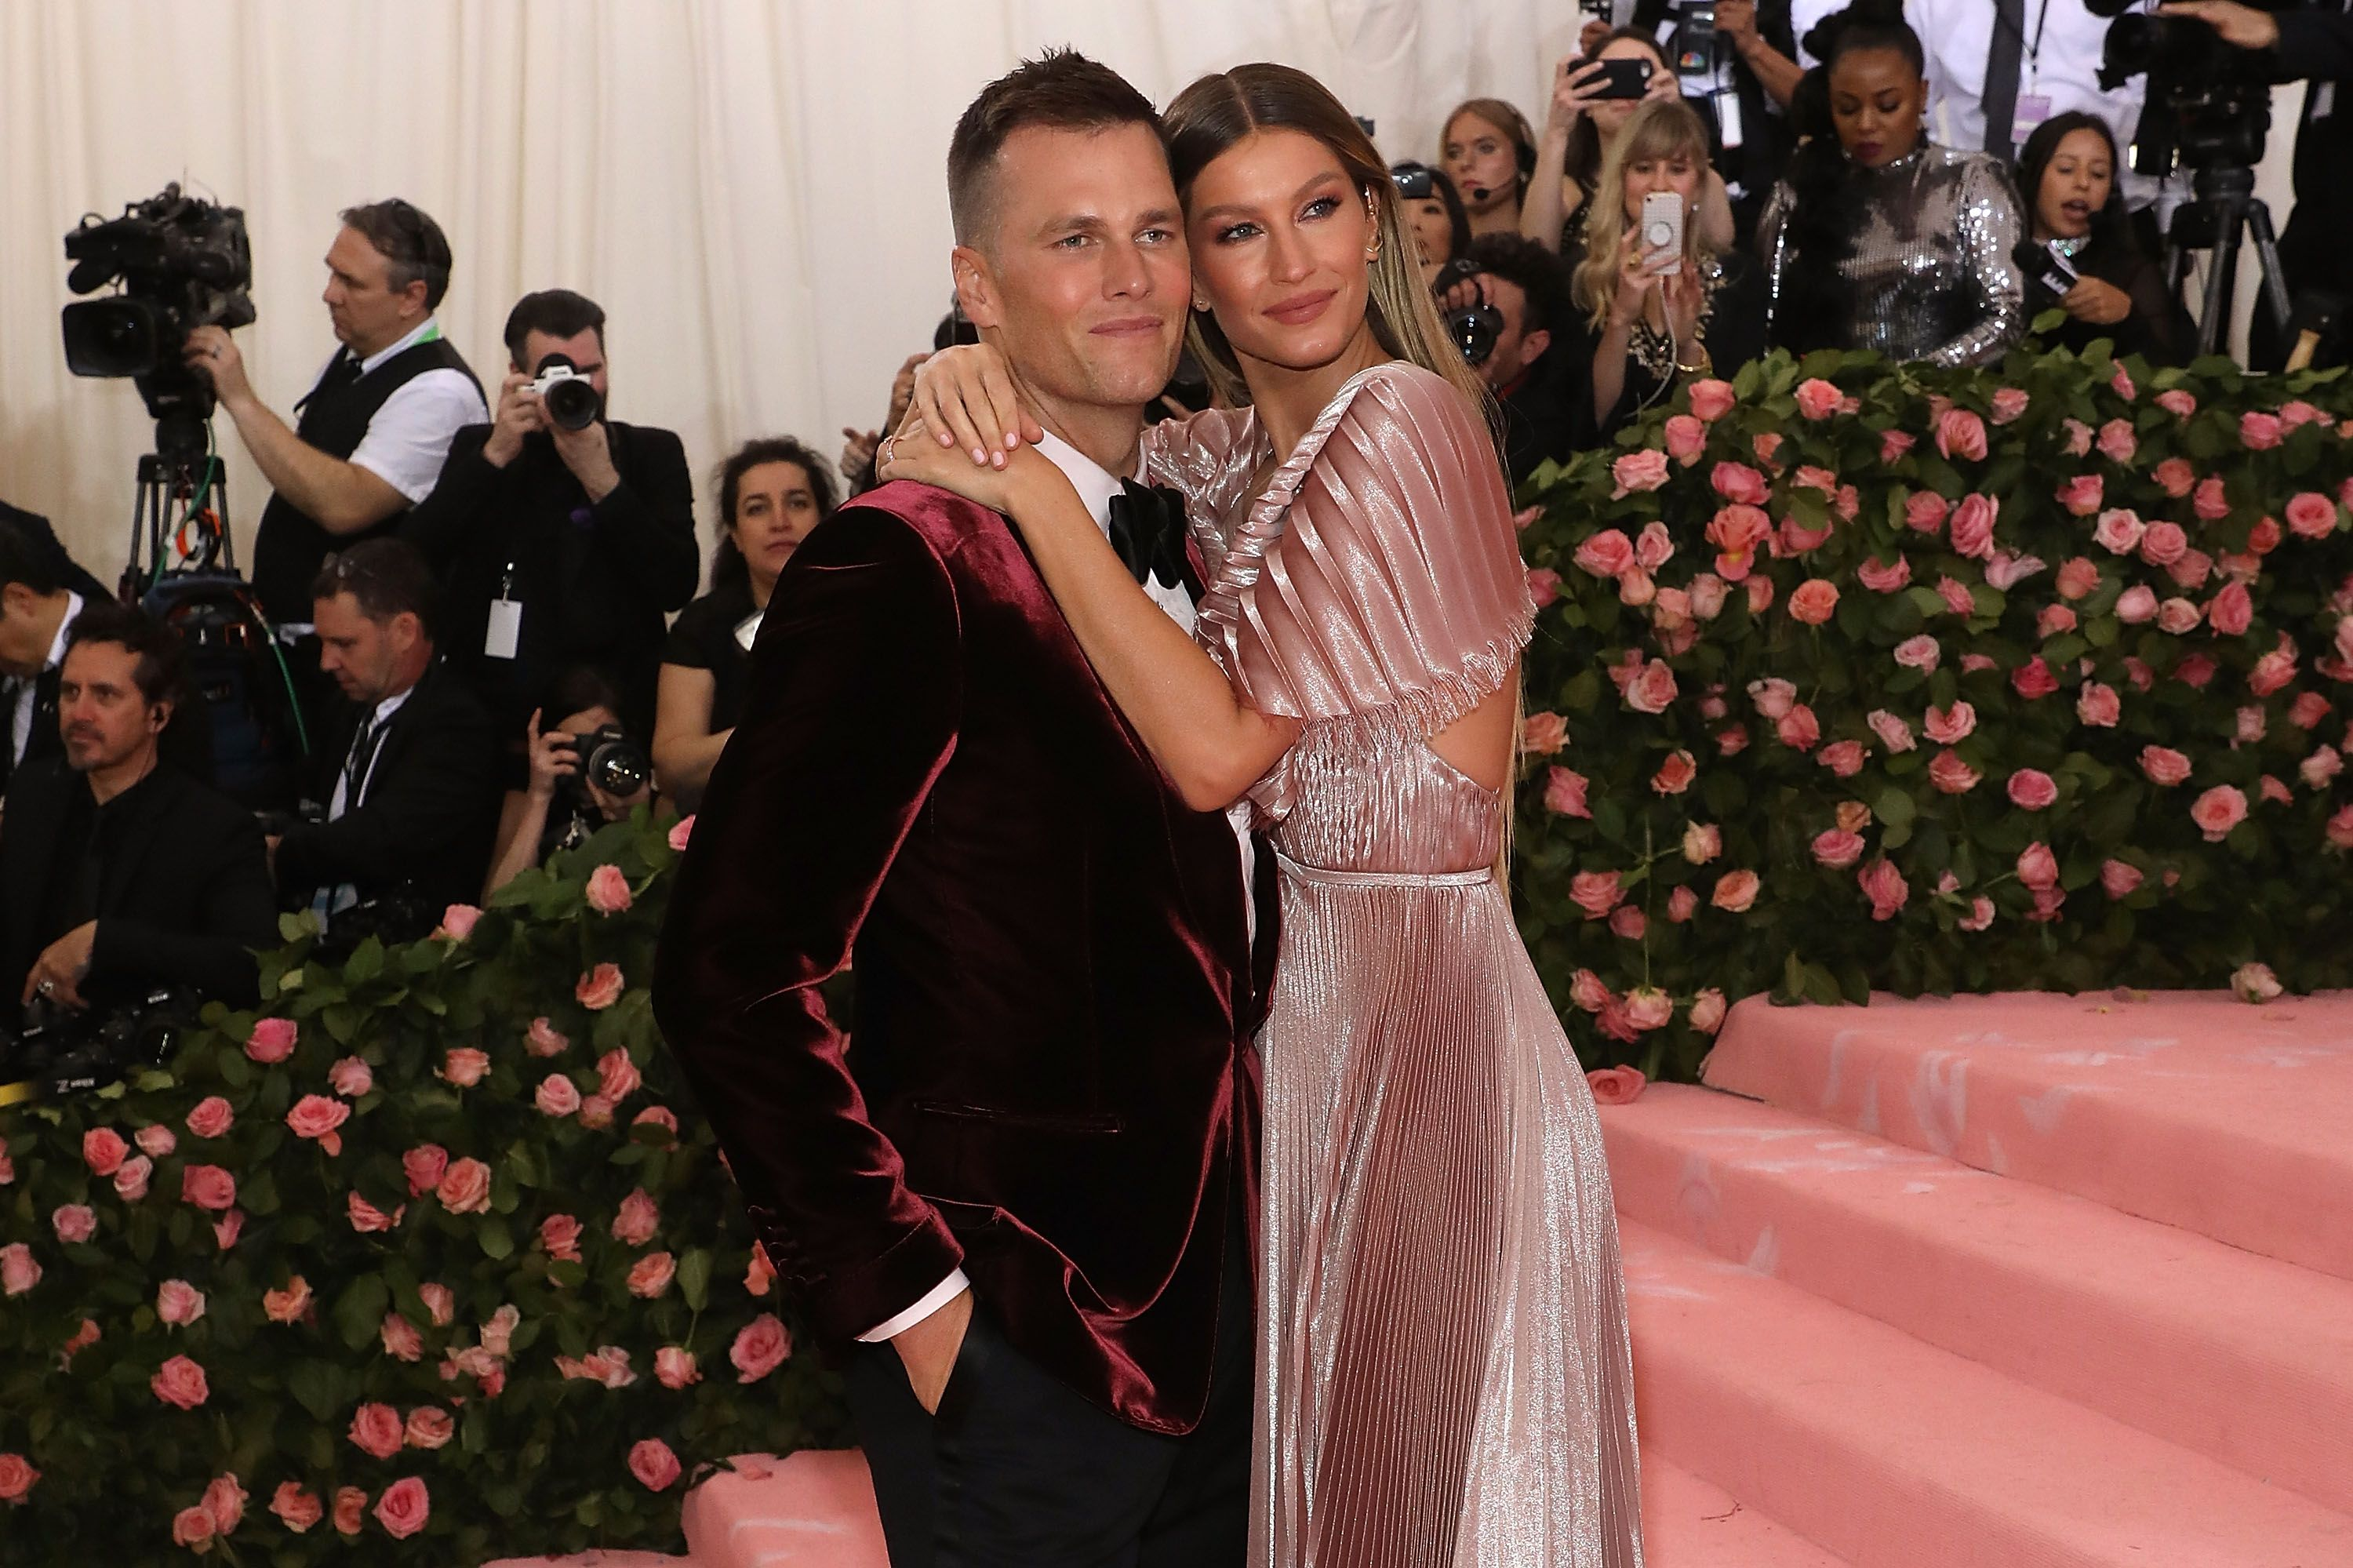 """Gisele Bundchen and Tom Brady at the Met Gala celebrating """"Camp: Notes on Fashion"""" at The Metropolitan Museum of Art on May 6, 2019 